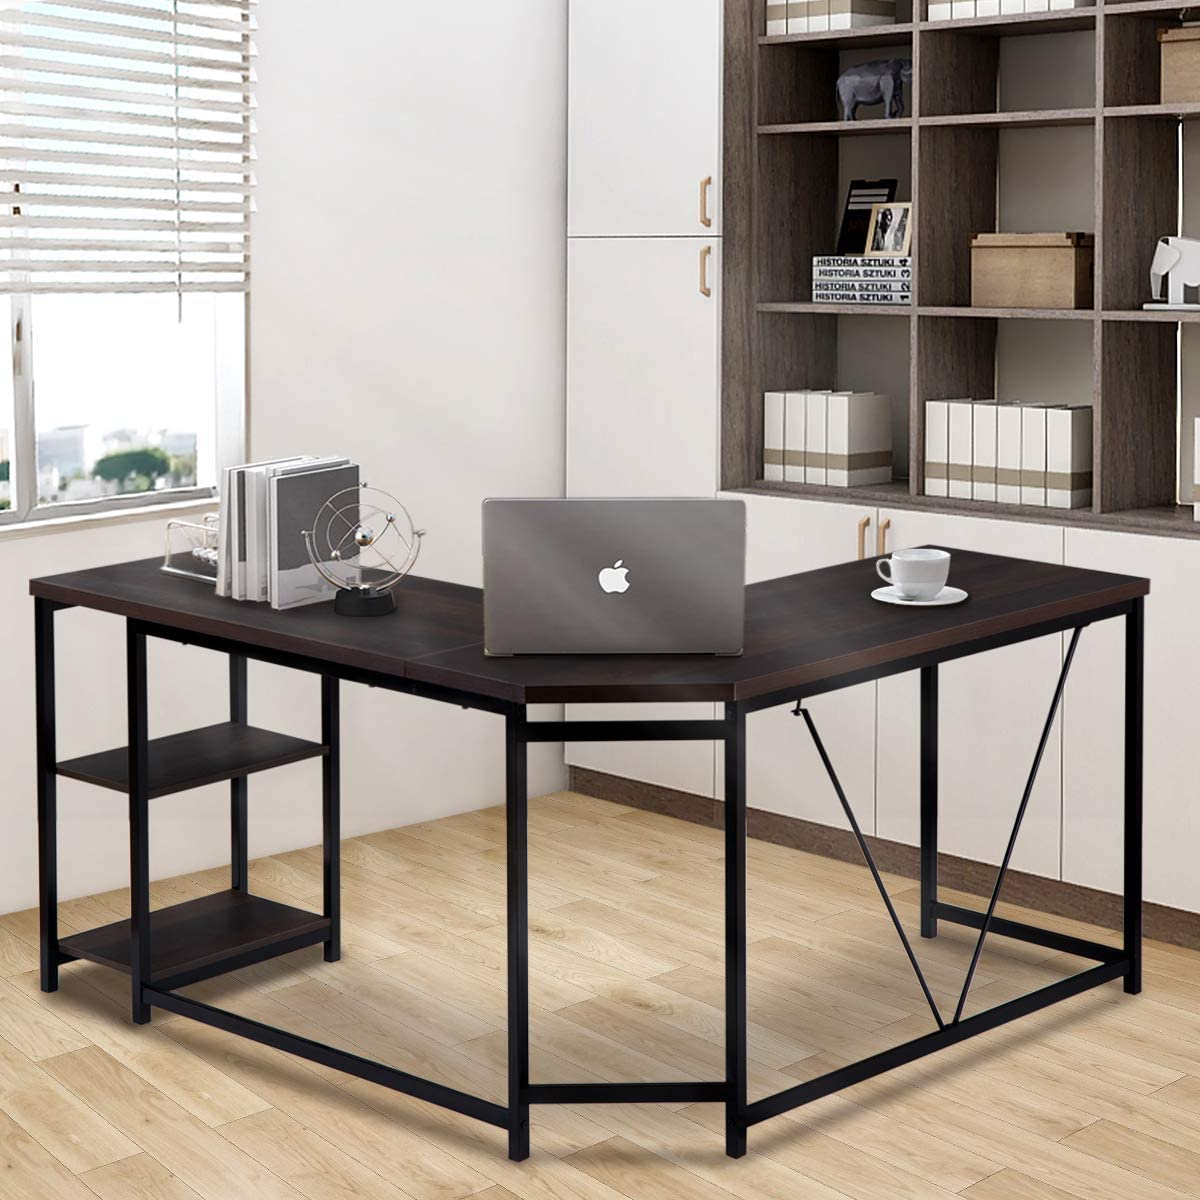 SSLine L-Shaped Computer Desk with 2-Tier Storage Shelves, 59-Inch Large Corner Computer Desk Wooden Study Writing Table Office Workstation with Metal Frame for Home Office Use A Type